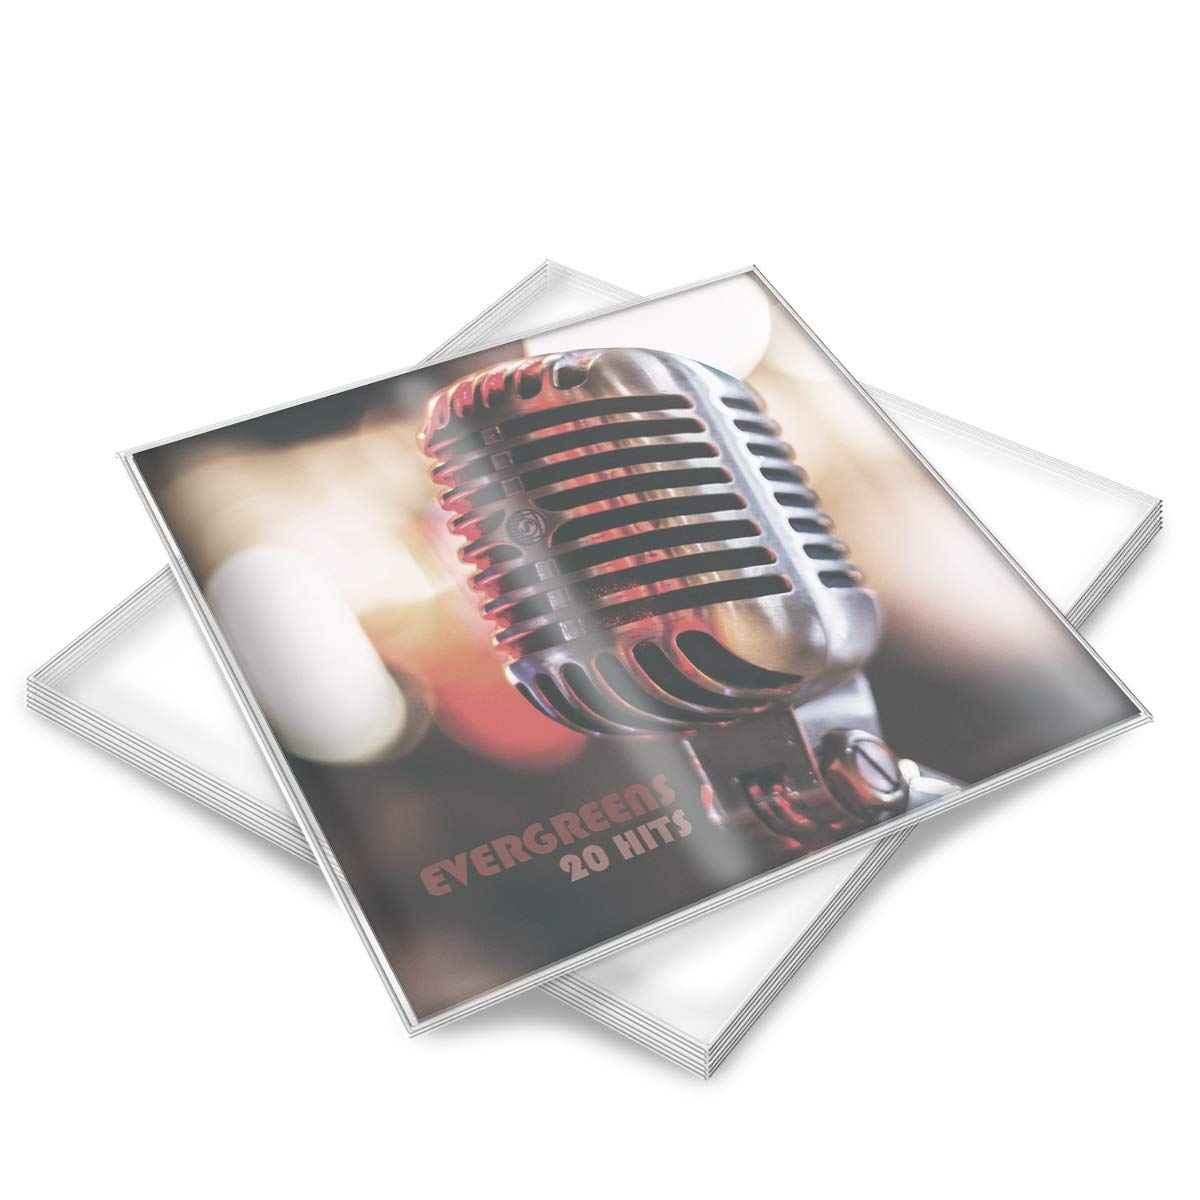 kwmobile 12' Vinyl Record Outer Sleeves - LP Record Vinyl Sleeves for Protection - Transparent Record Cover Protectors - 100 Pieces, Size 325 x 325mm KW-Commerce 46568.01_m001330